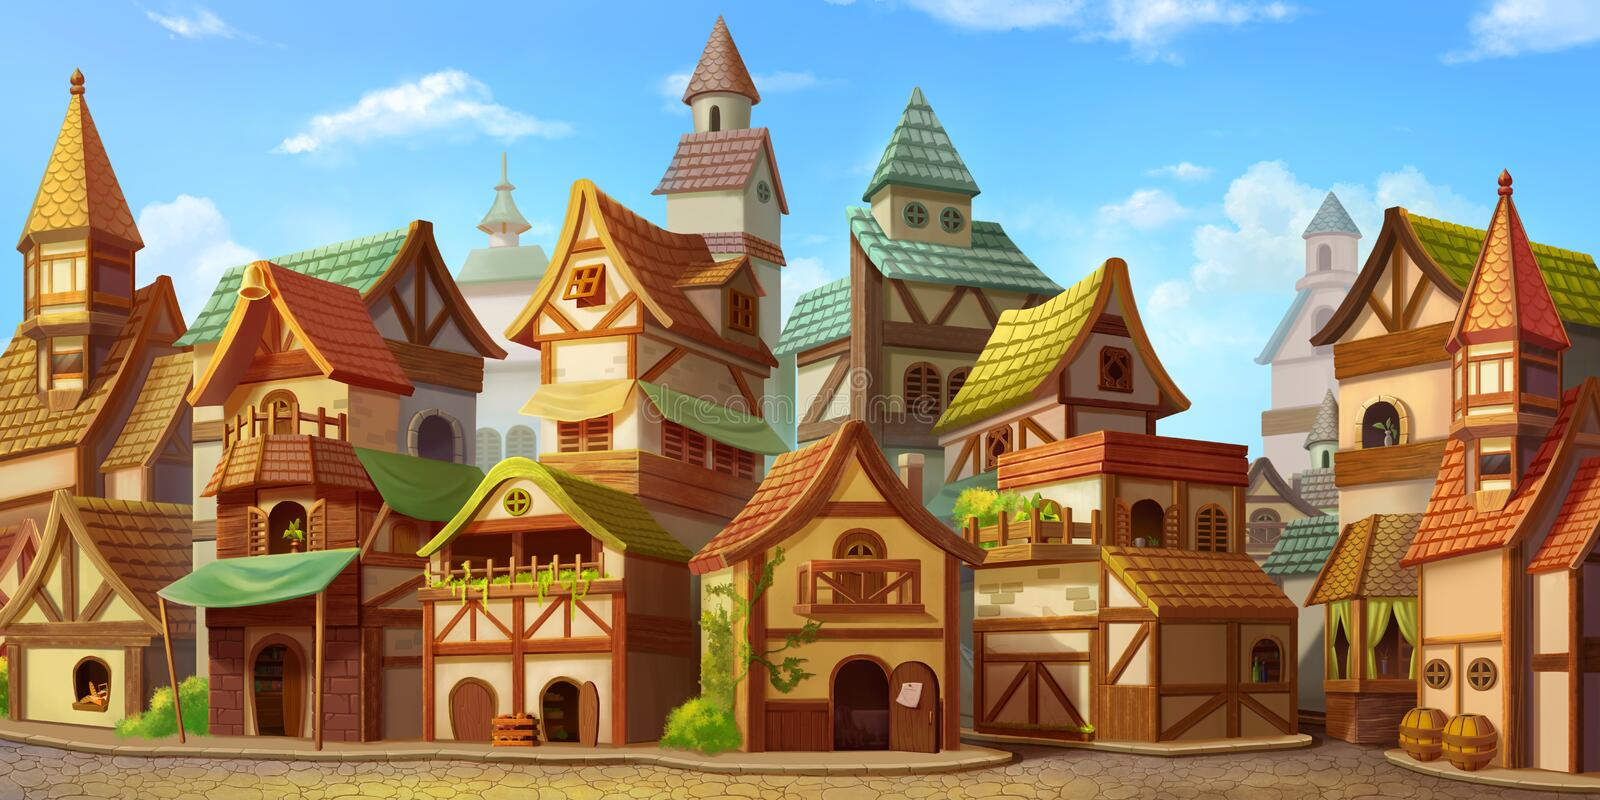 Small Fairy Tale Town. Fiction Backdrop. Concept Art. Realistic Illustration vector illustration